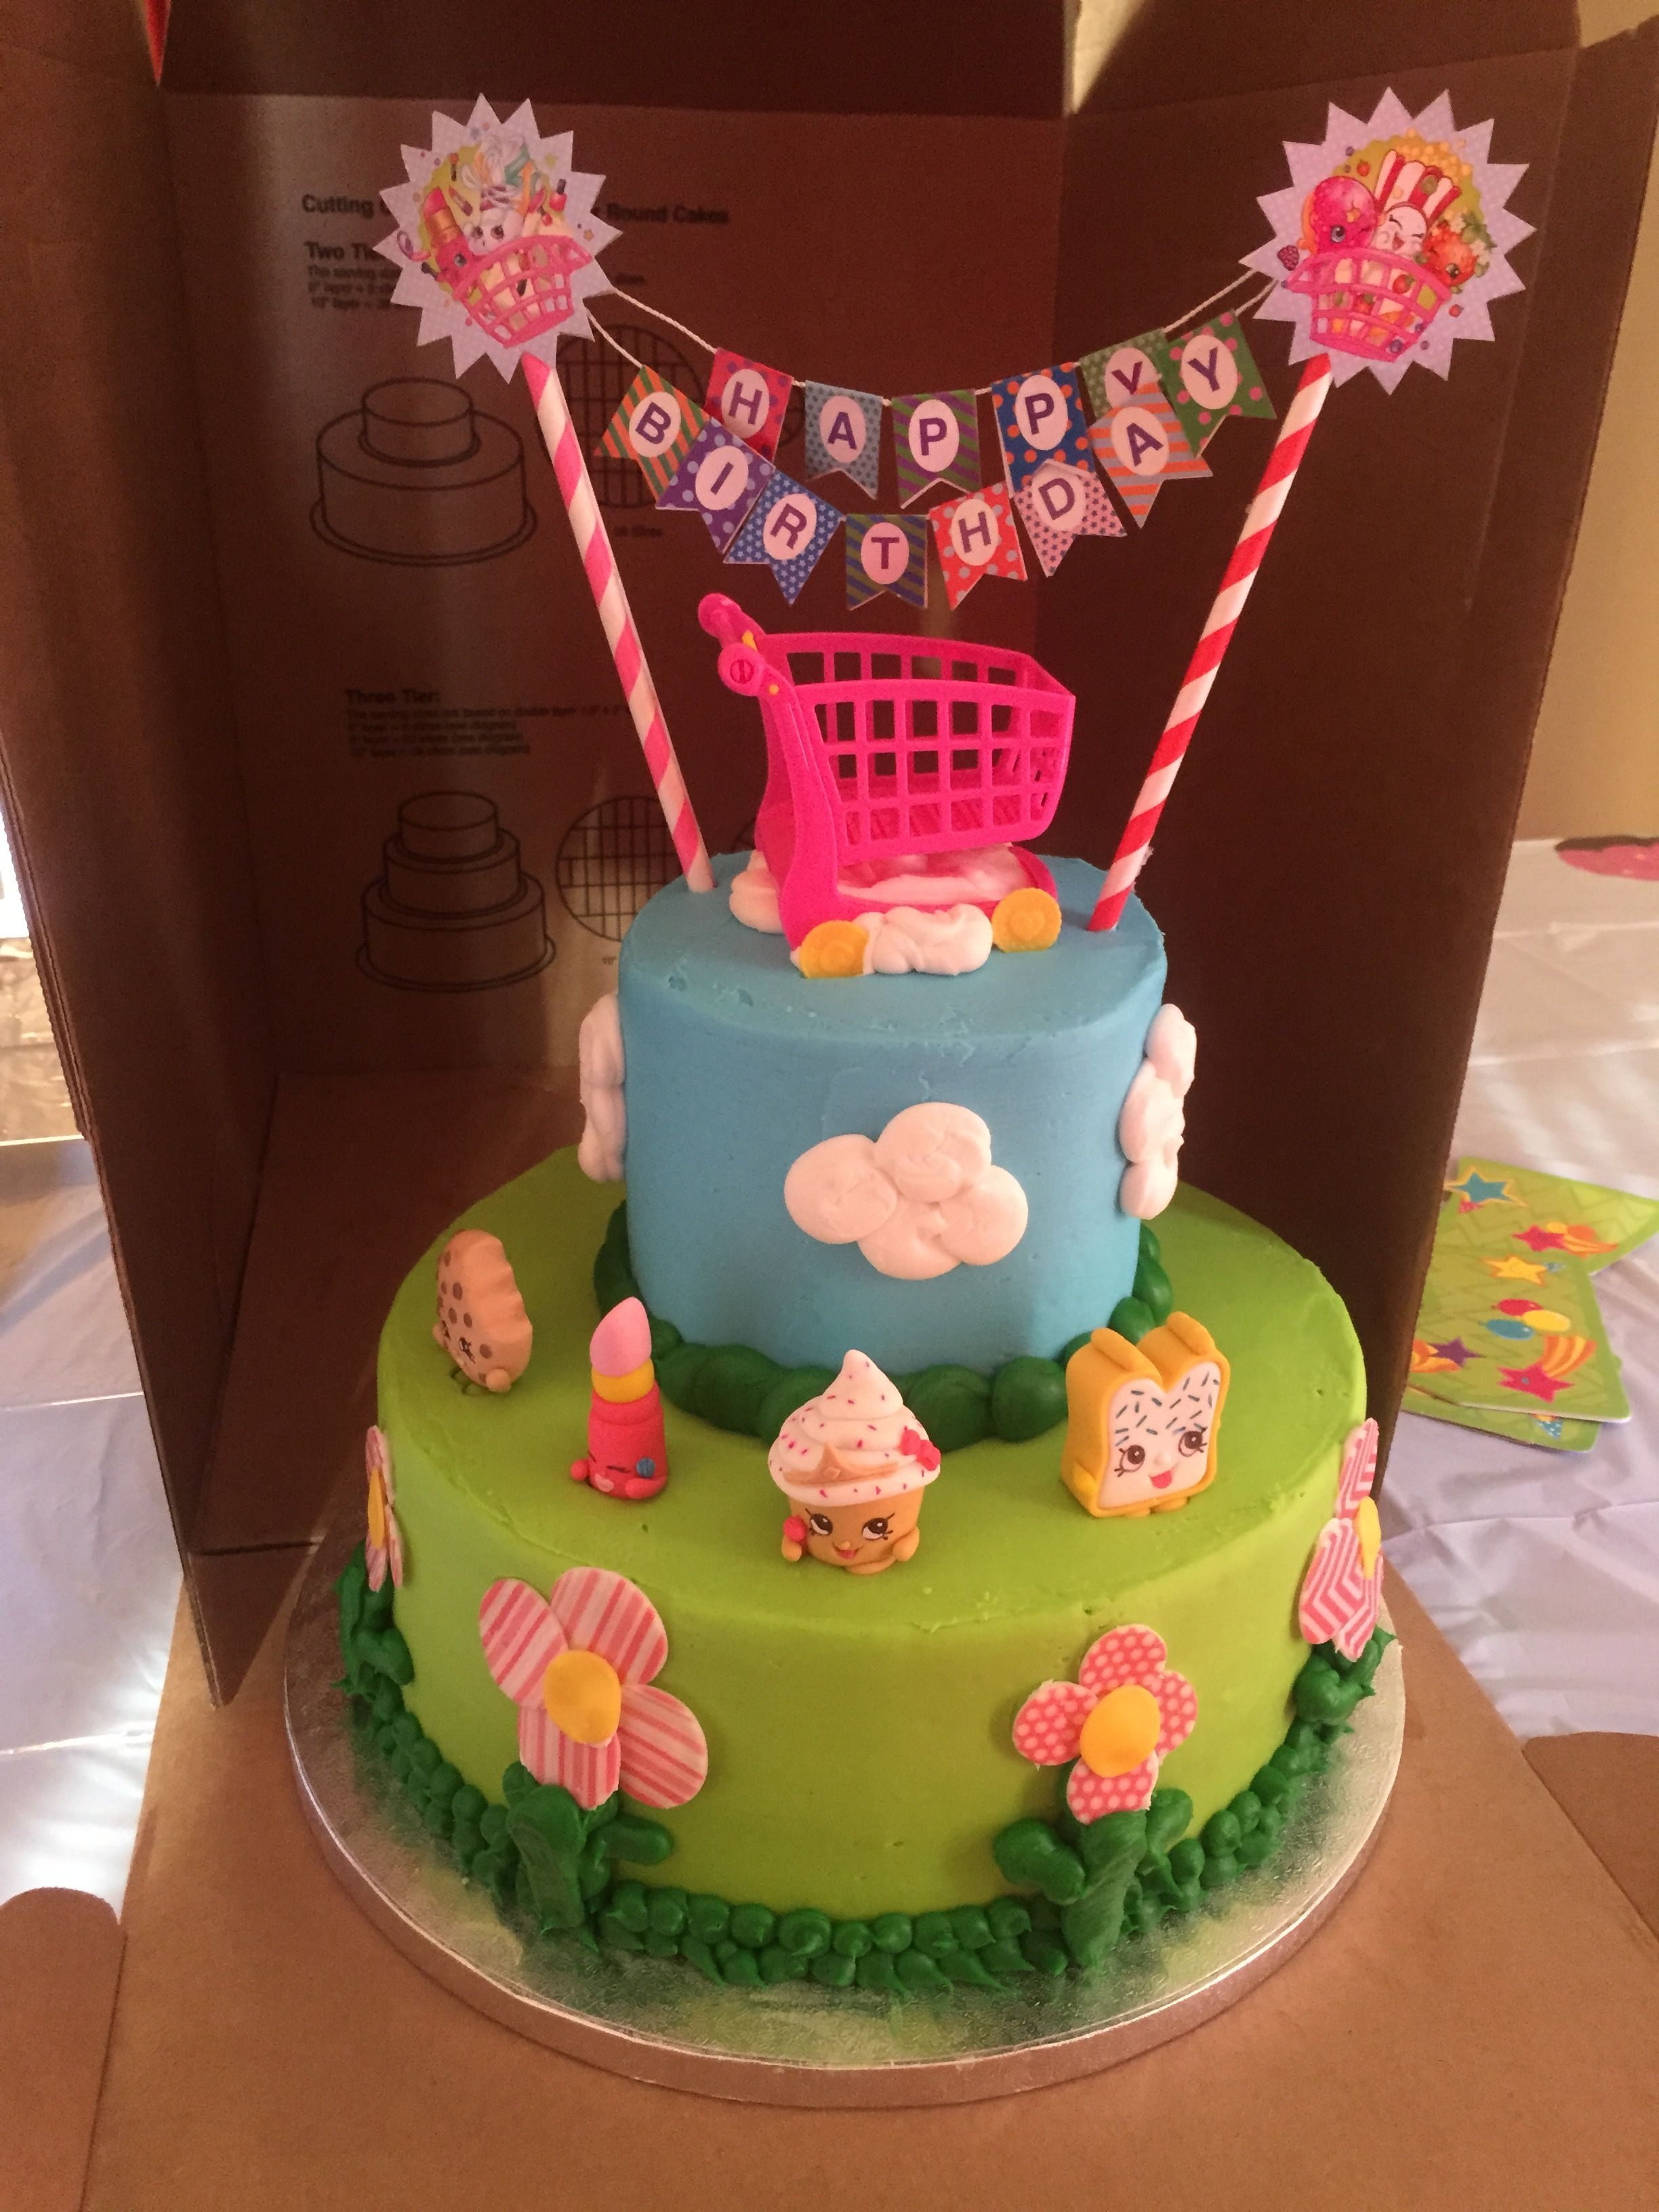 Admirable Sams Club 2 Tier Cake With Added Shopkins Sams Made The Cake But Funny Birthday Cards Online Alyptdamsfinfo